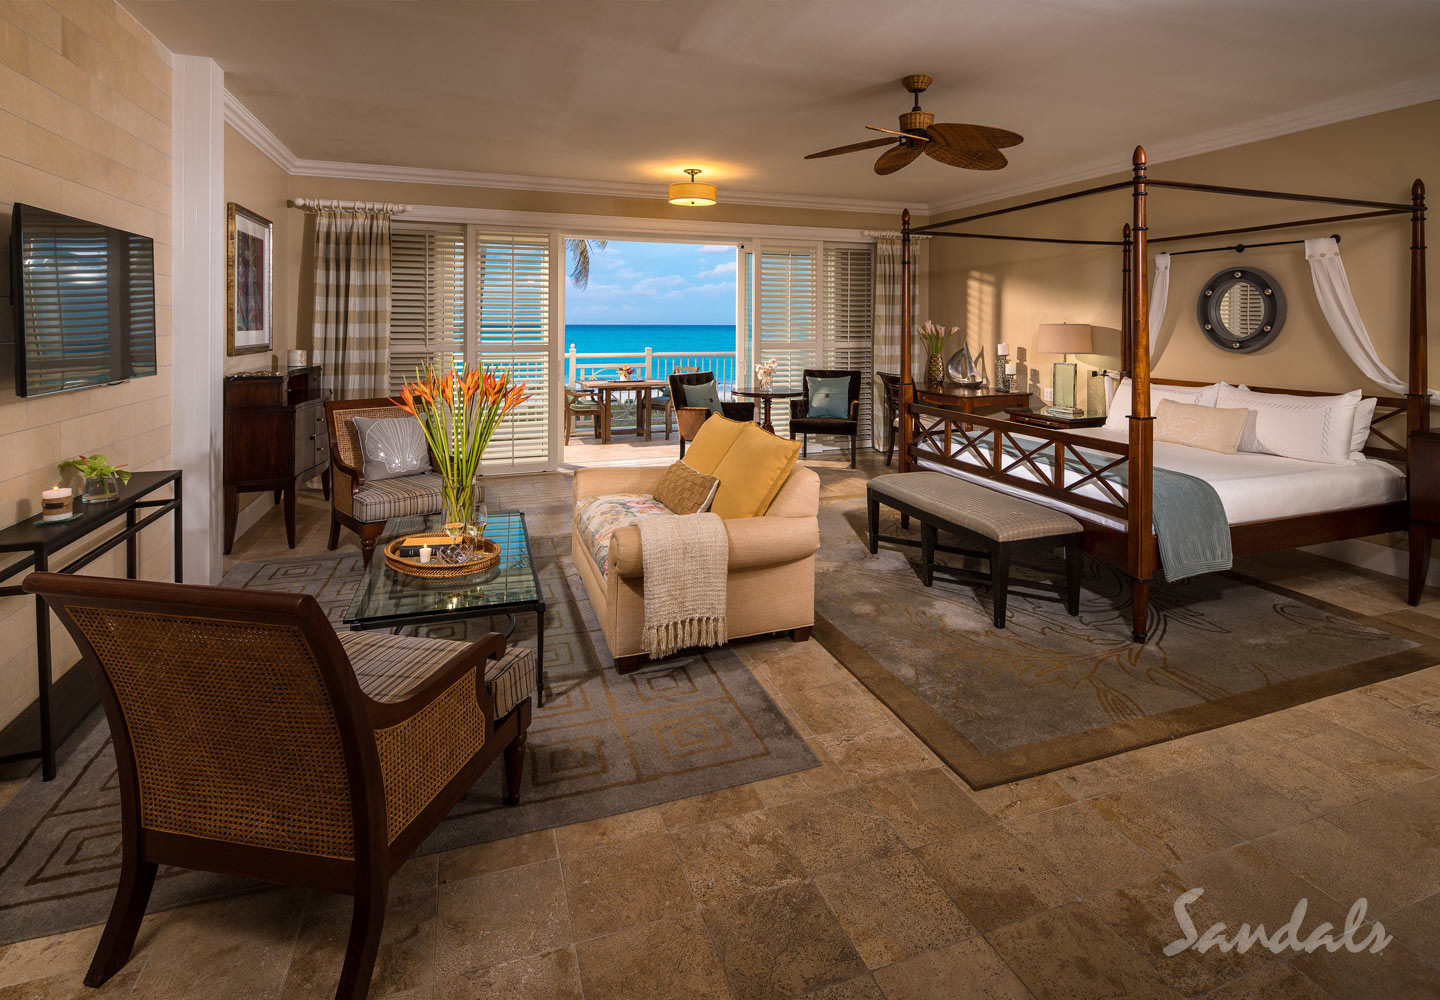 Travel Agency All-Inclusive Resort Sandals Emerald Bay 128